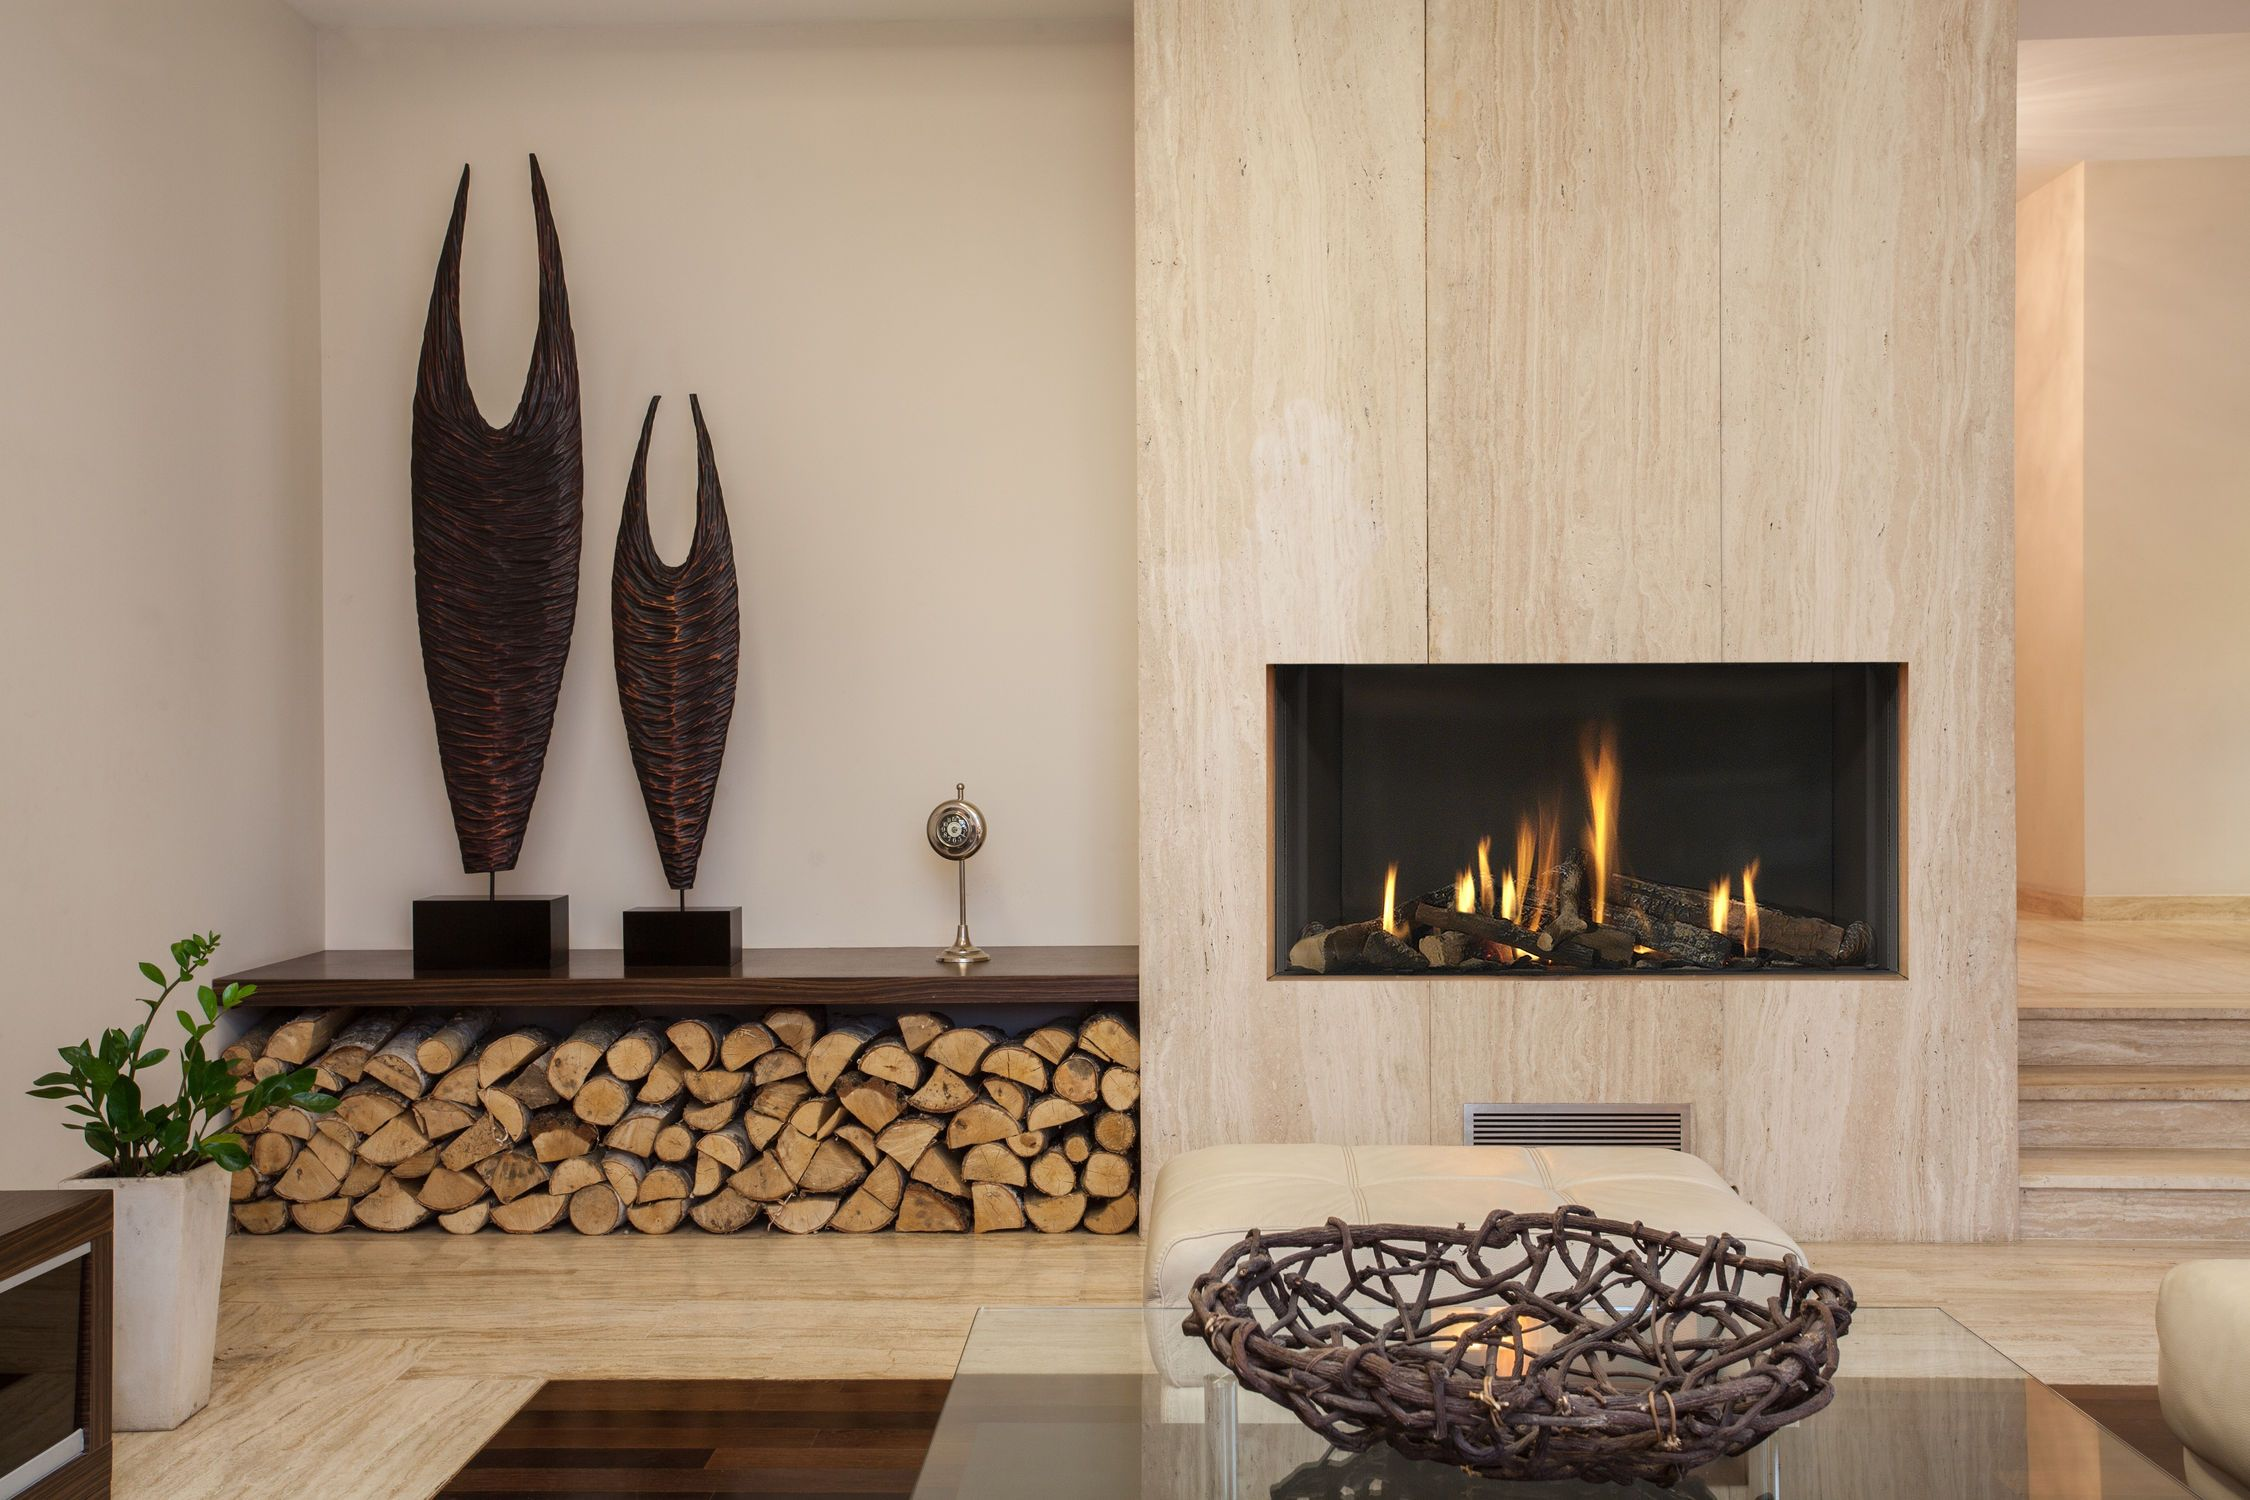 Modern Fireplace With Clean Lines Better For Small Rooms More